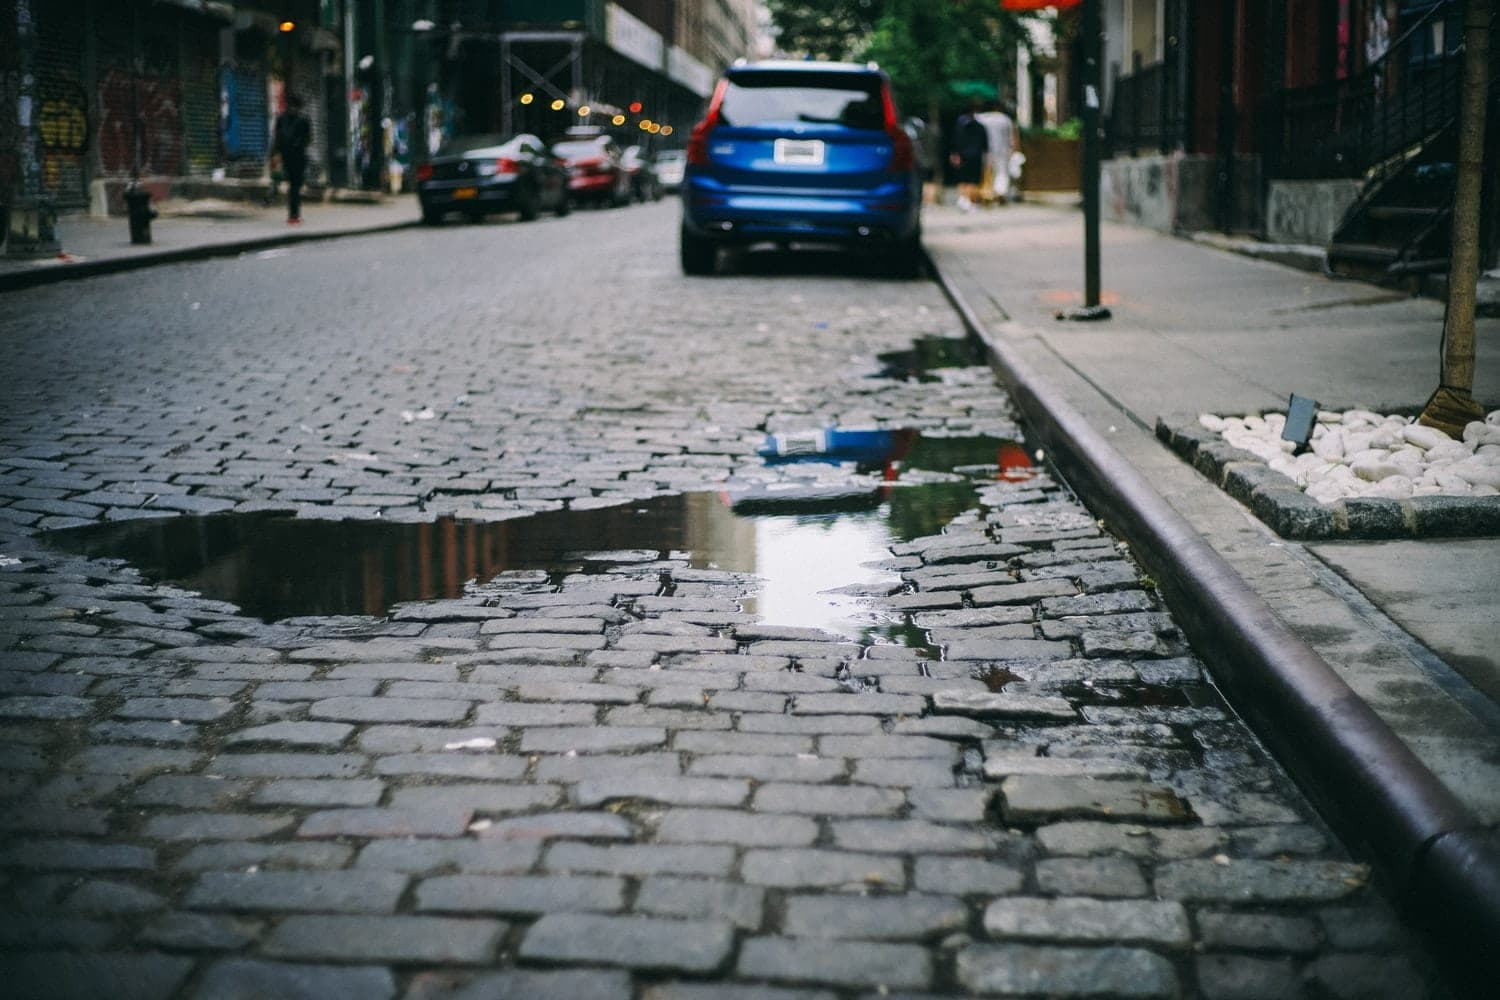 A pothole on a cobblestone road